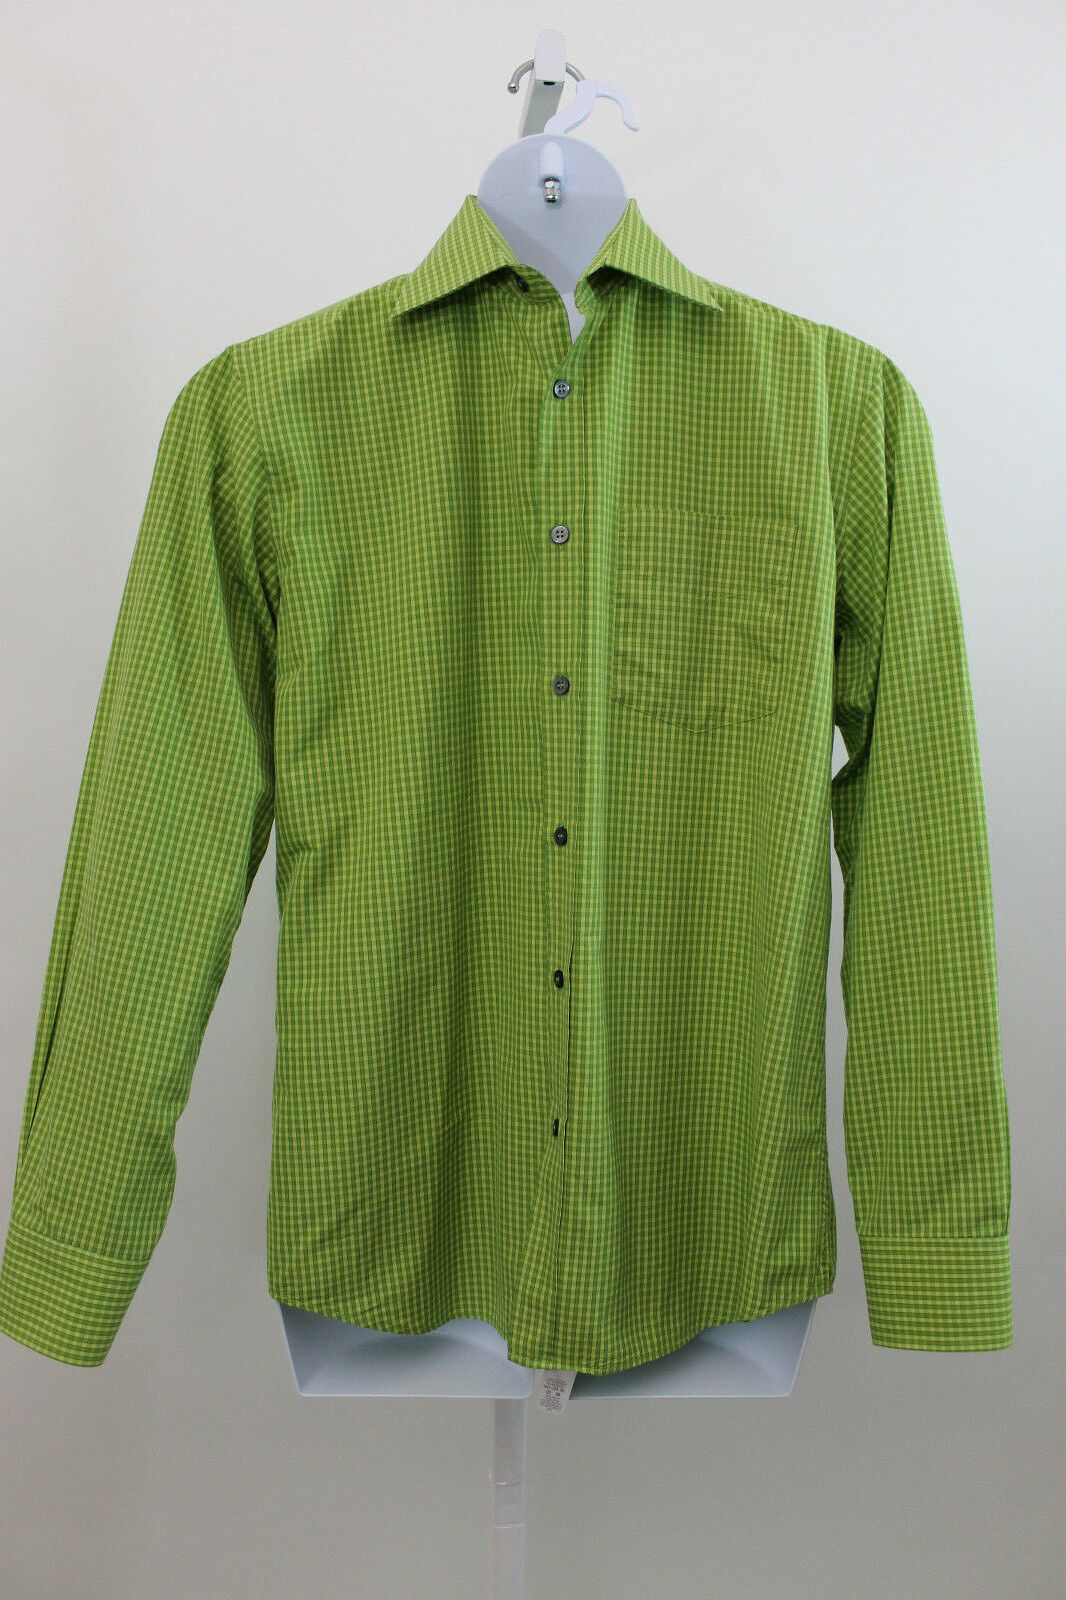 Paul Smith London verde Quadrettato 100% Cotton Camicia 15 1 2 39 (